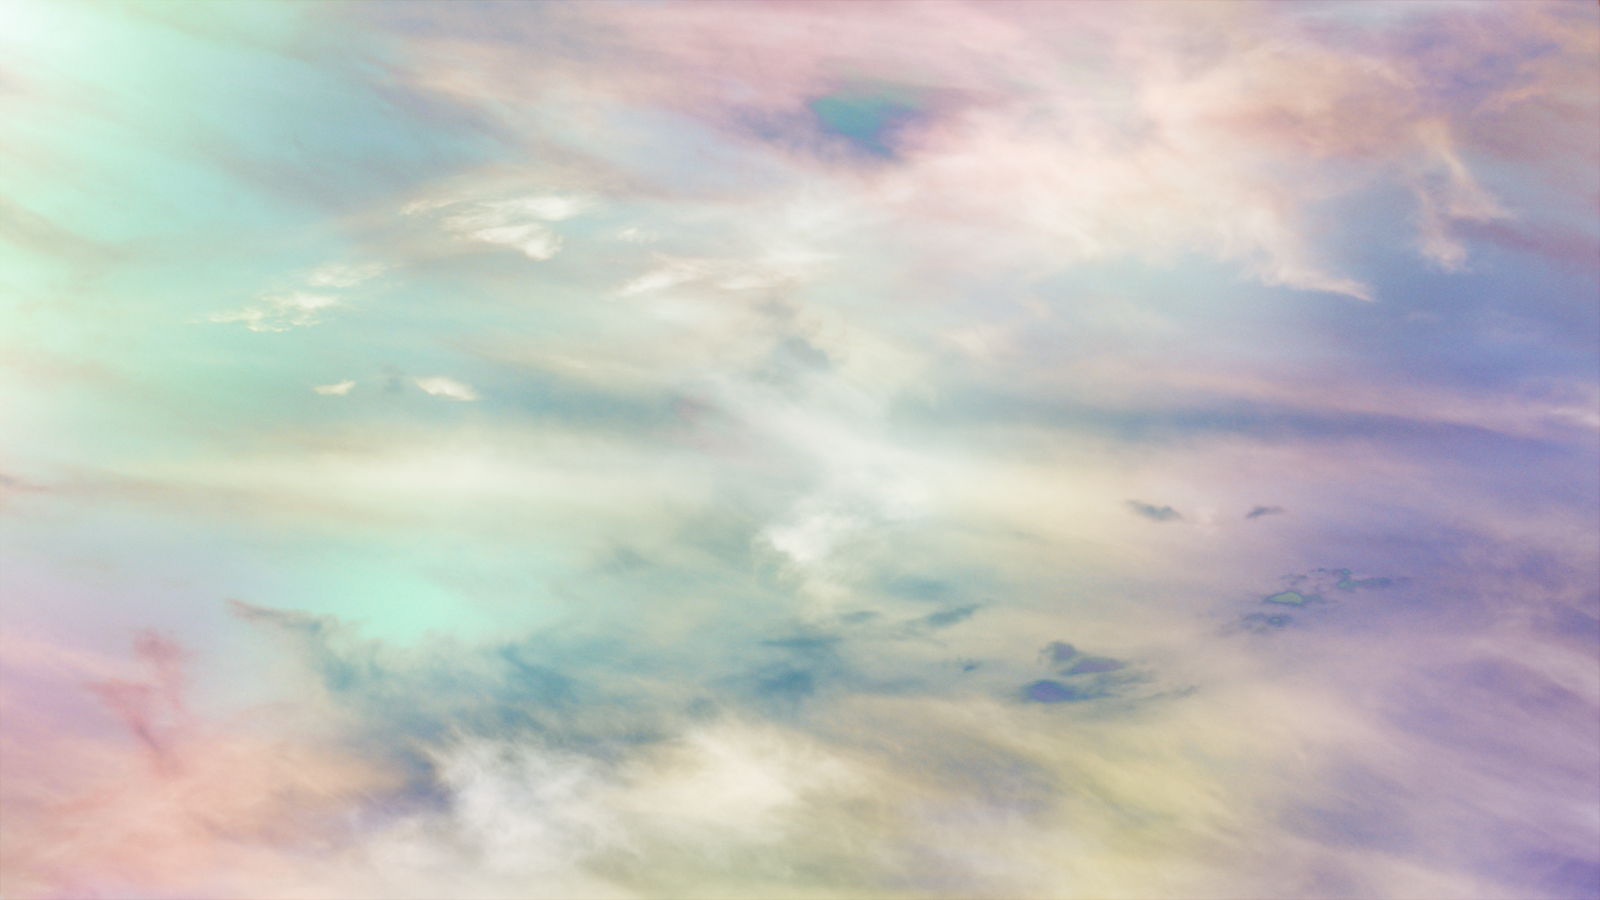 evening_clouds_colorful.jpg